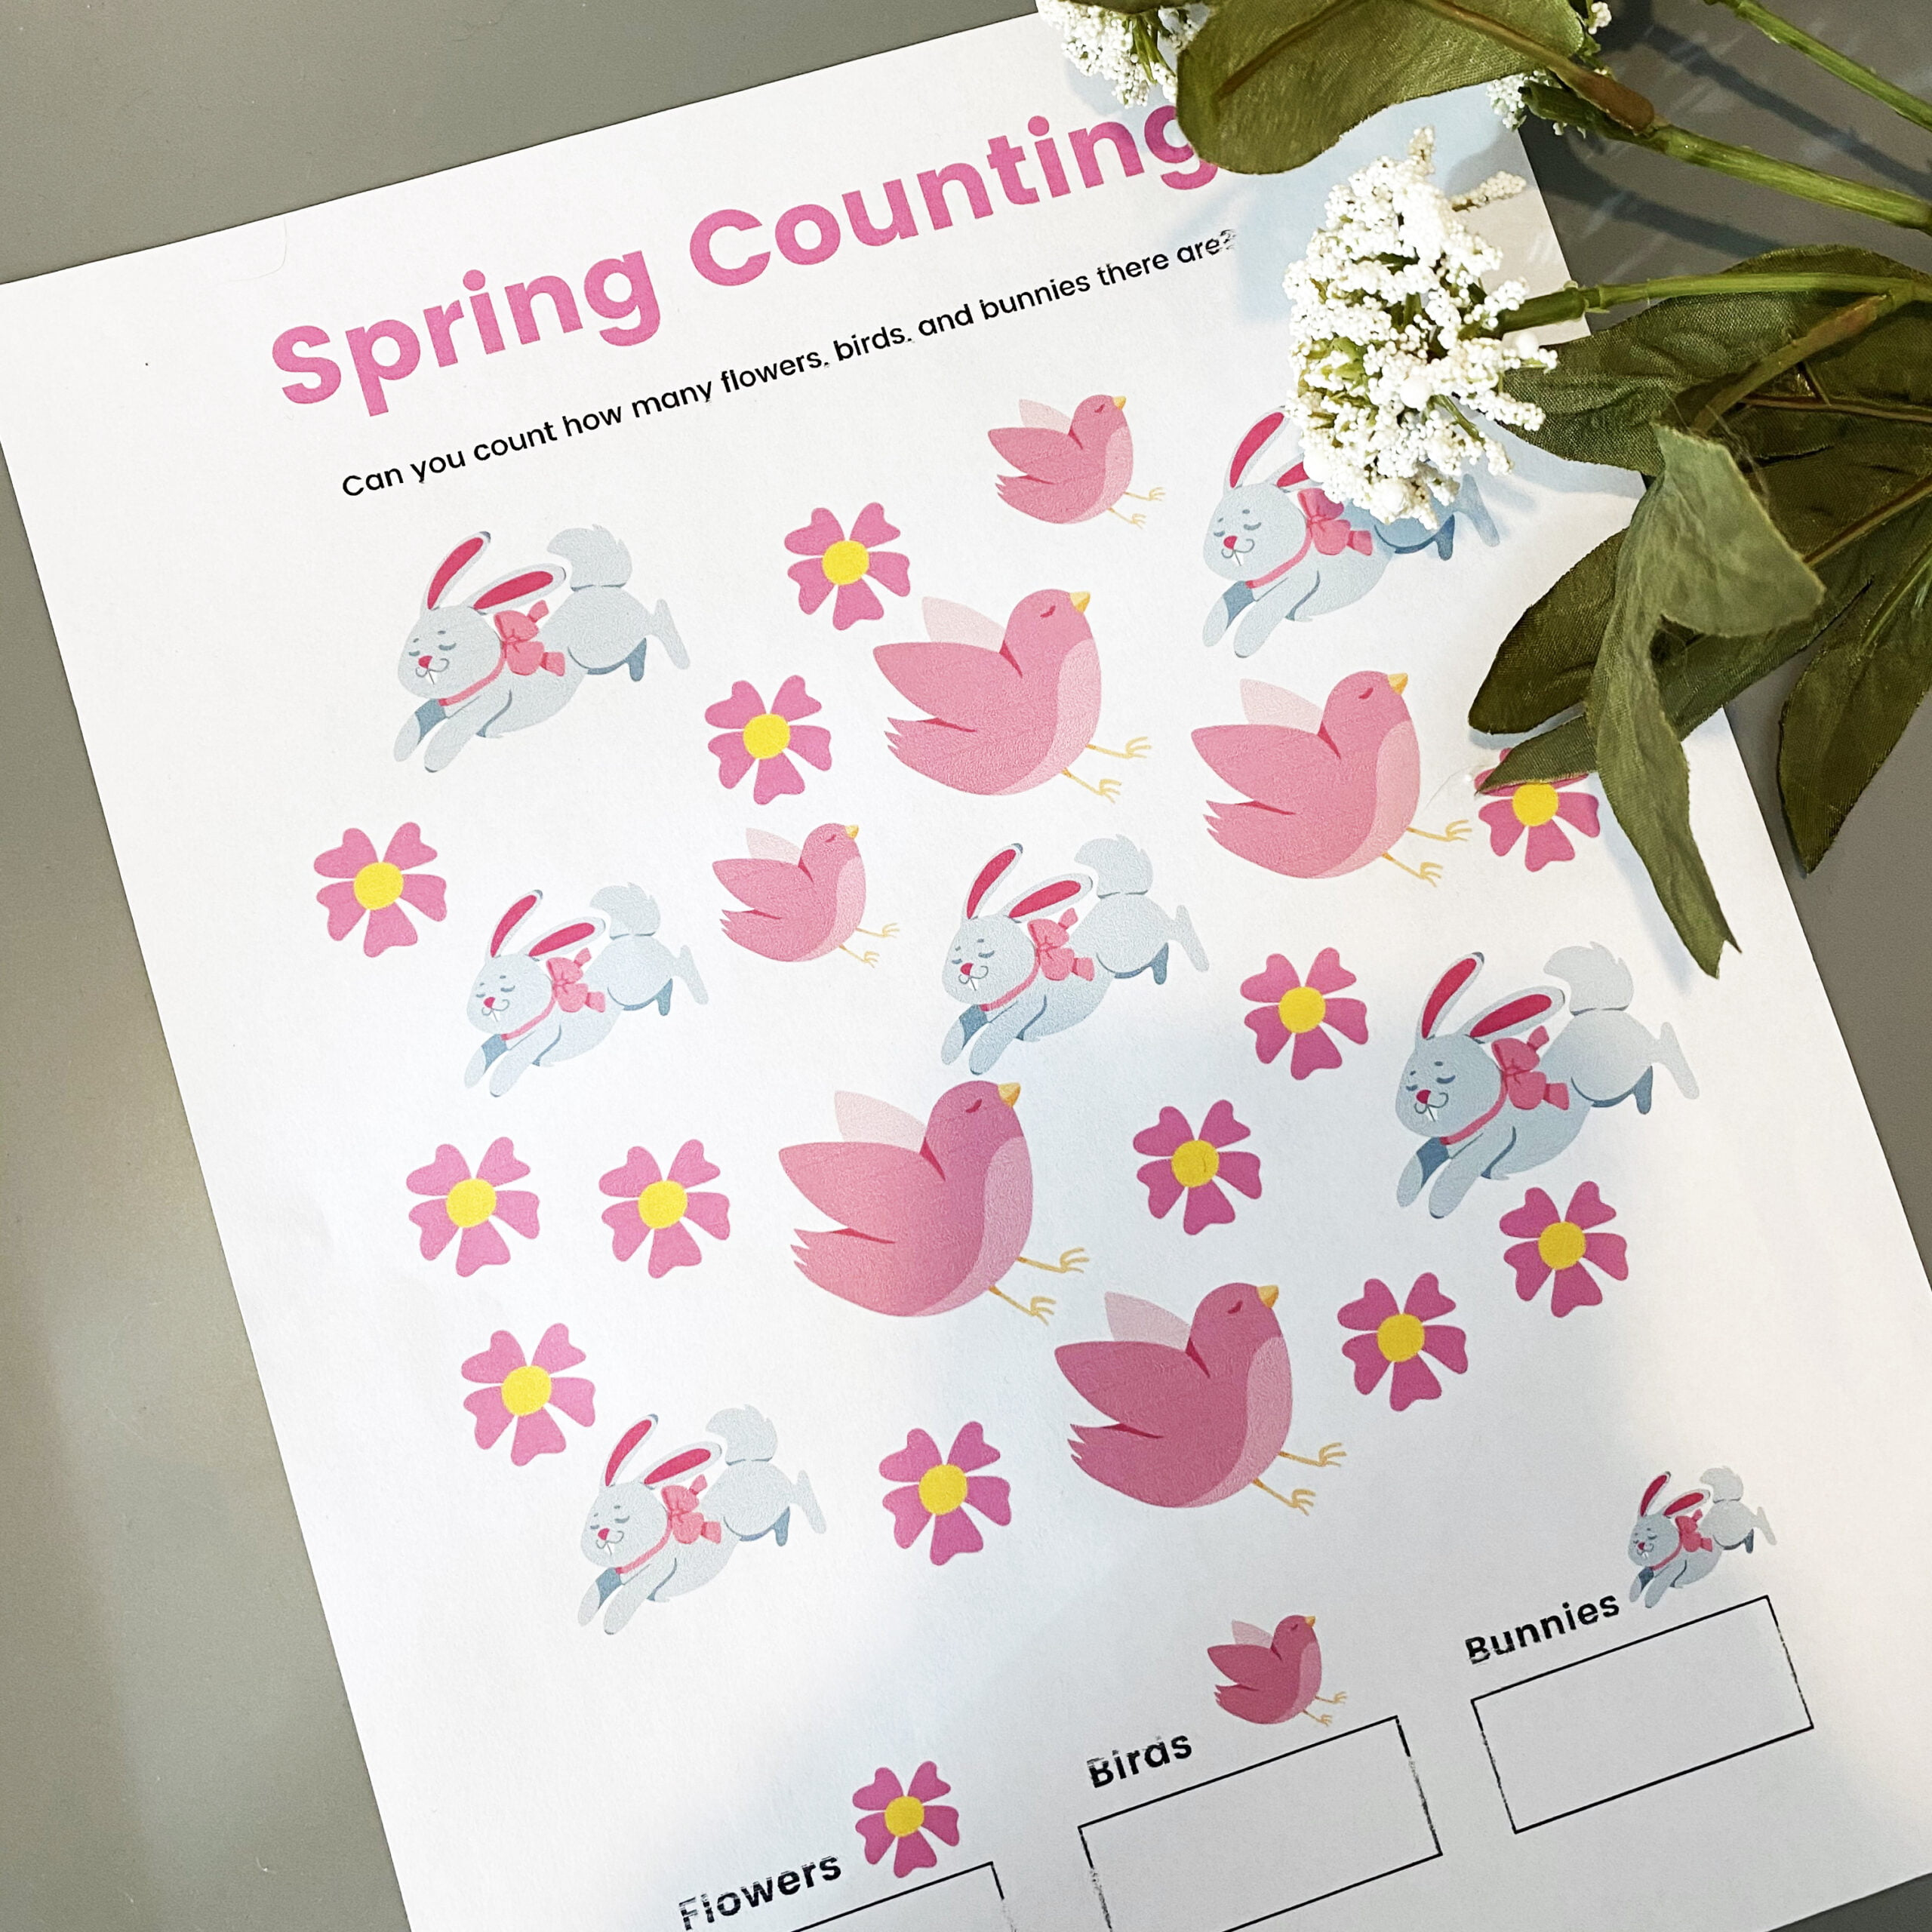 https://thebestnest.co/wp-content/uploads/2021/03/Spring-Counting.pdf